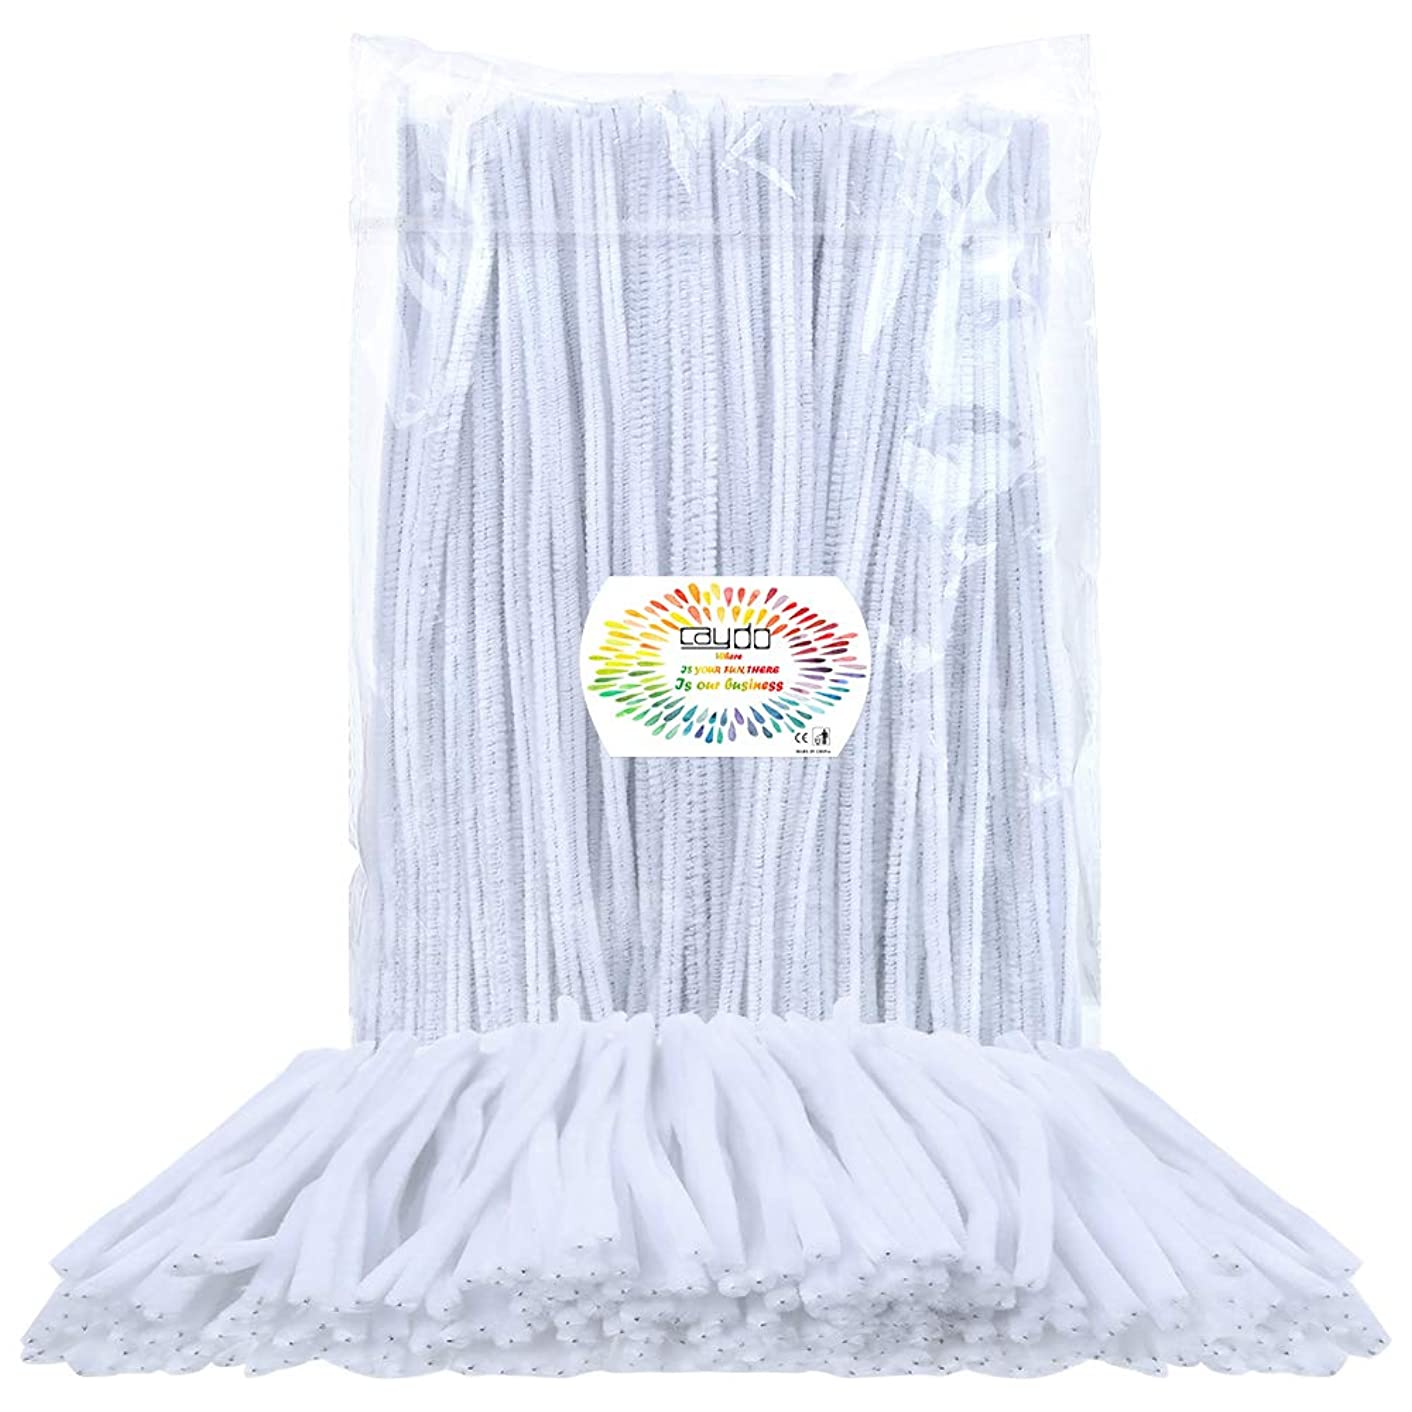 Caydo 350 Pieces Chenille White Pipe Cleaners for DIY, Art Creative Crafts Decorations (6 mm x 12 inch)